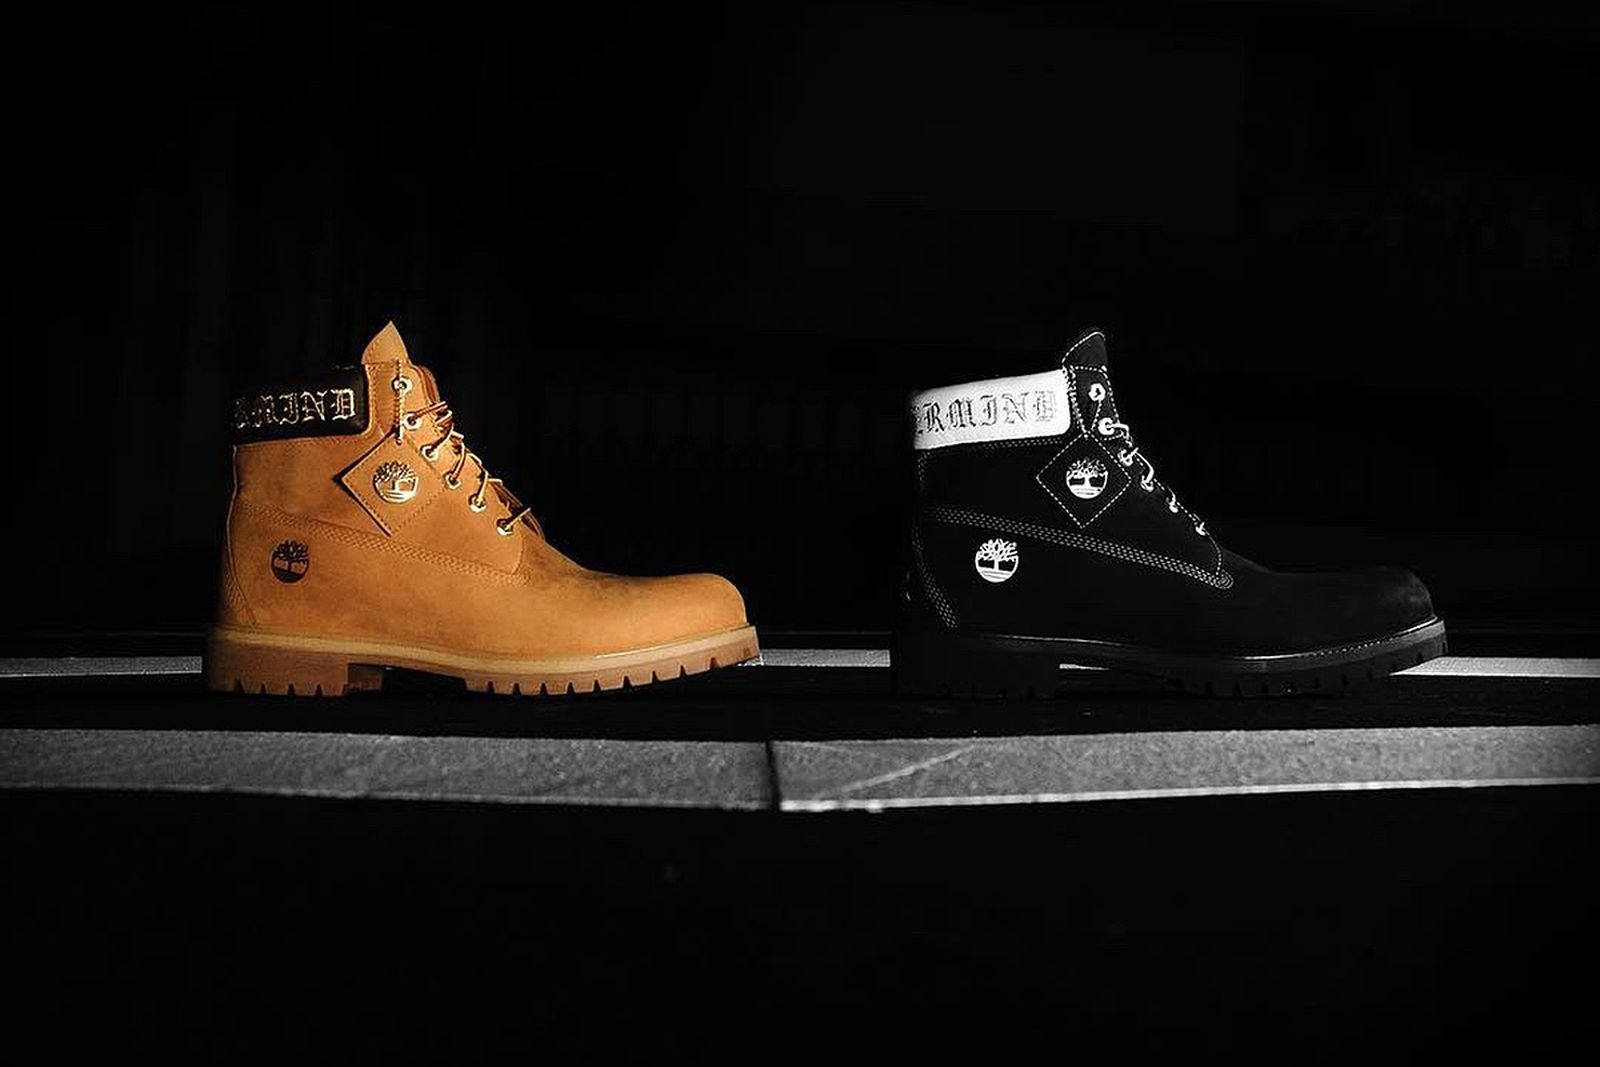 mastermind timberland side zip boot release date price